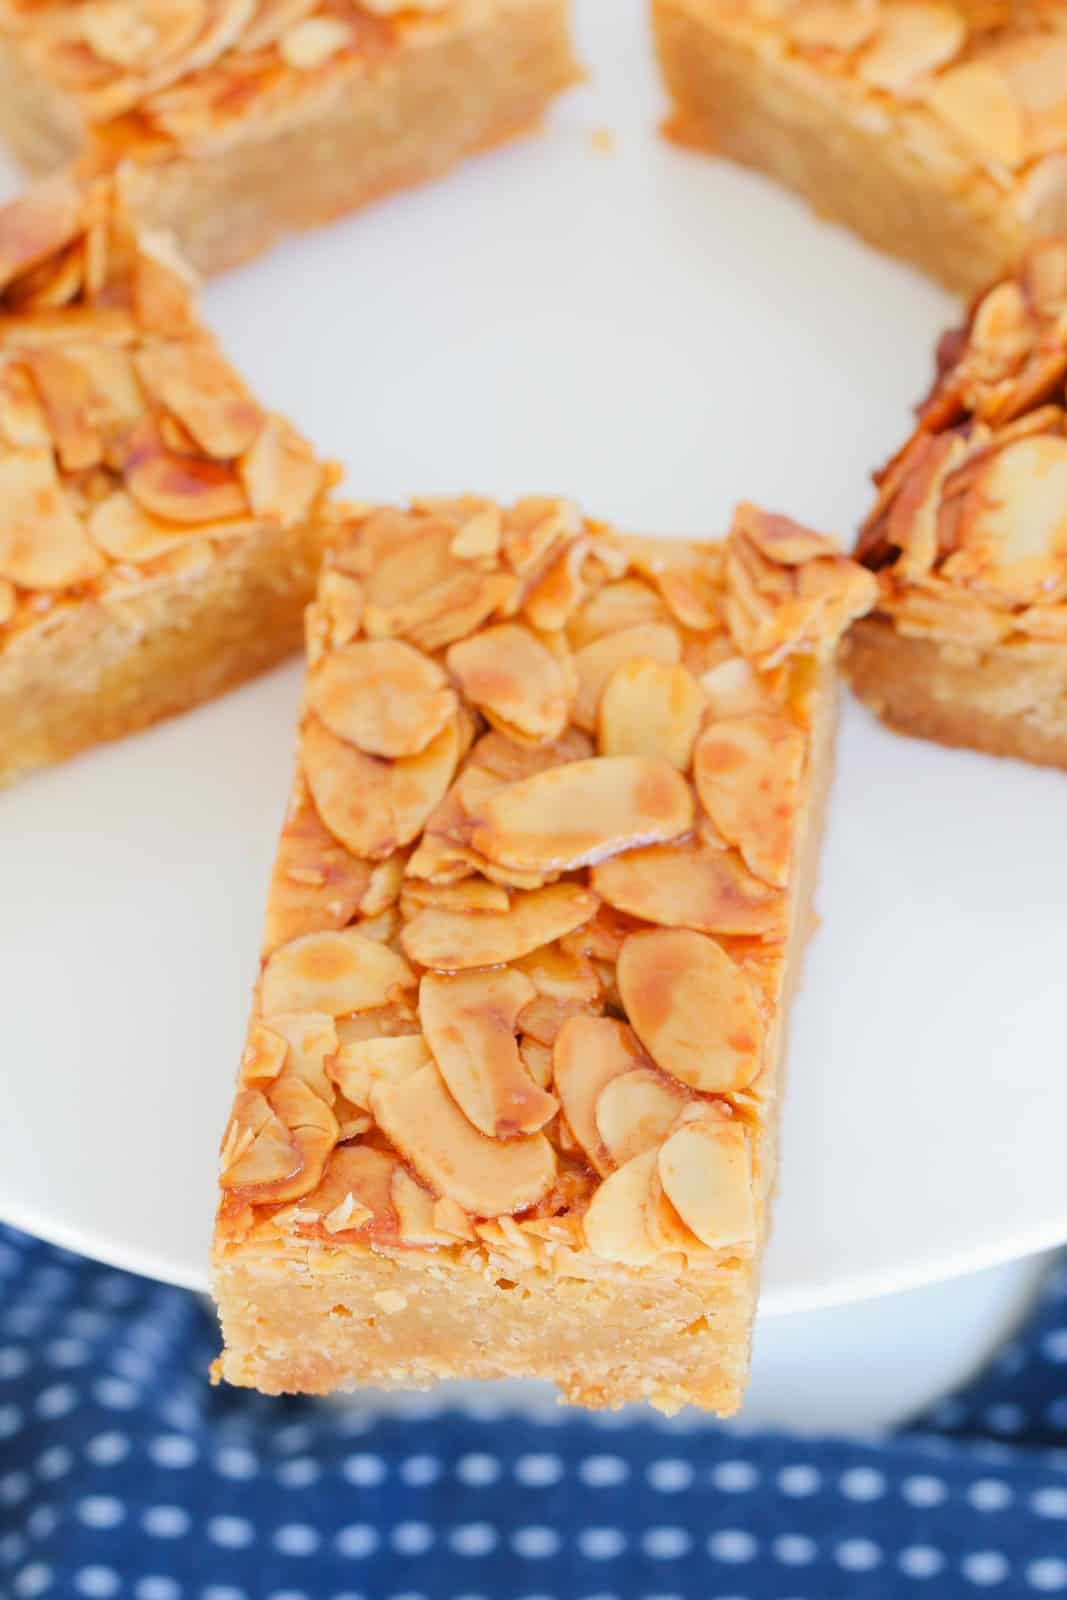 A close up view of pieces of honey almond slice on a white plate